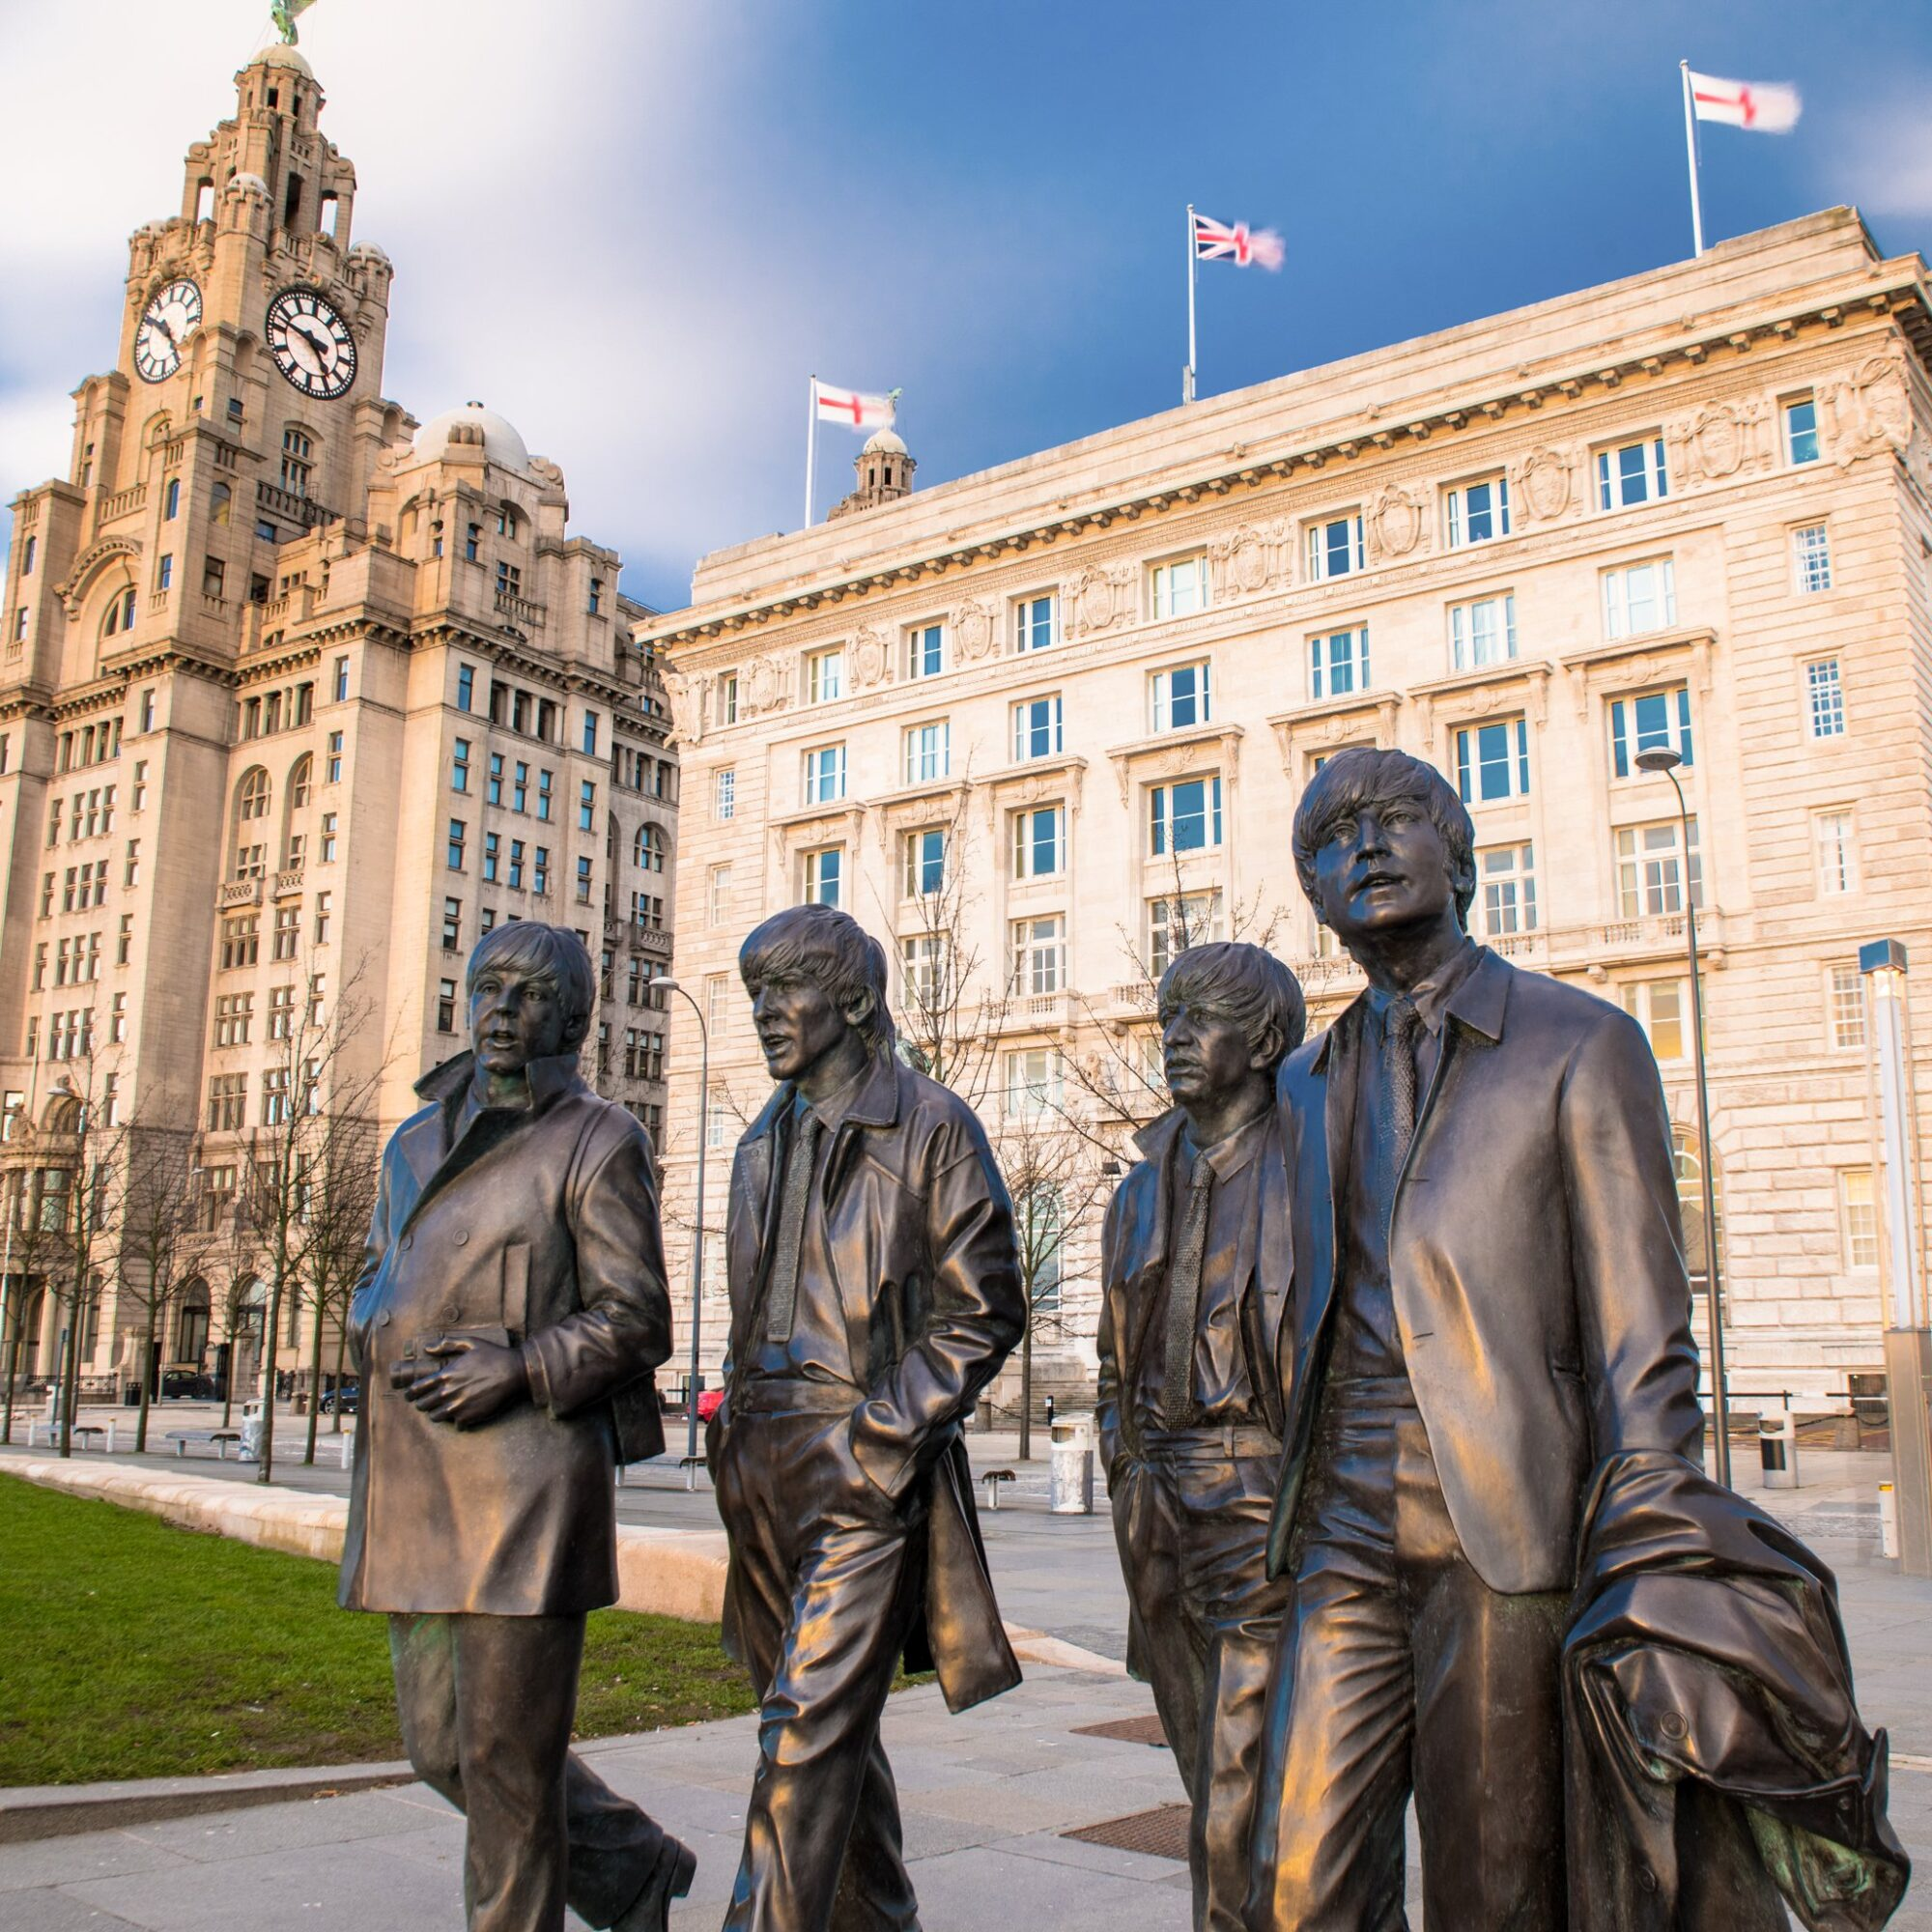 A statue of The Beatles on the on Liverpool Waterfront.